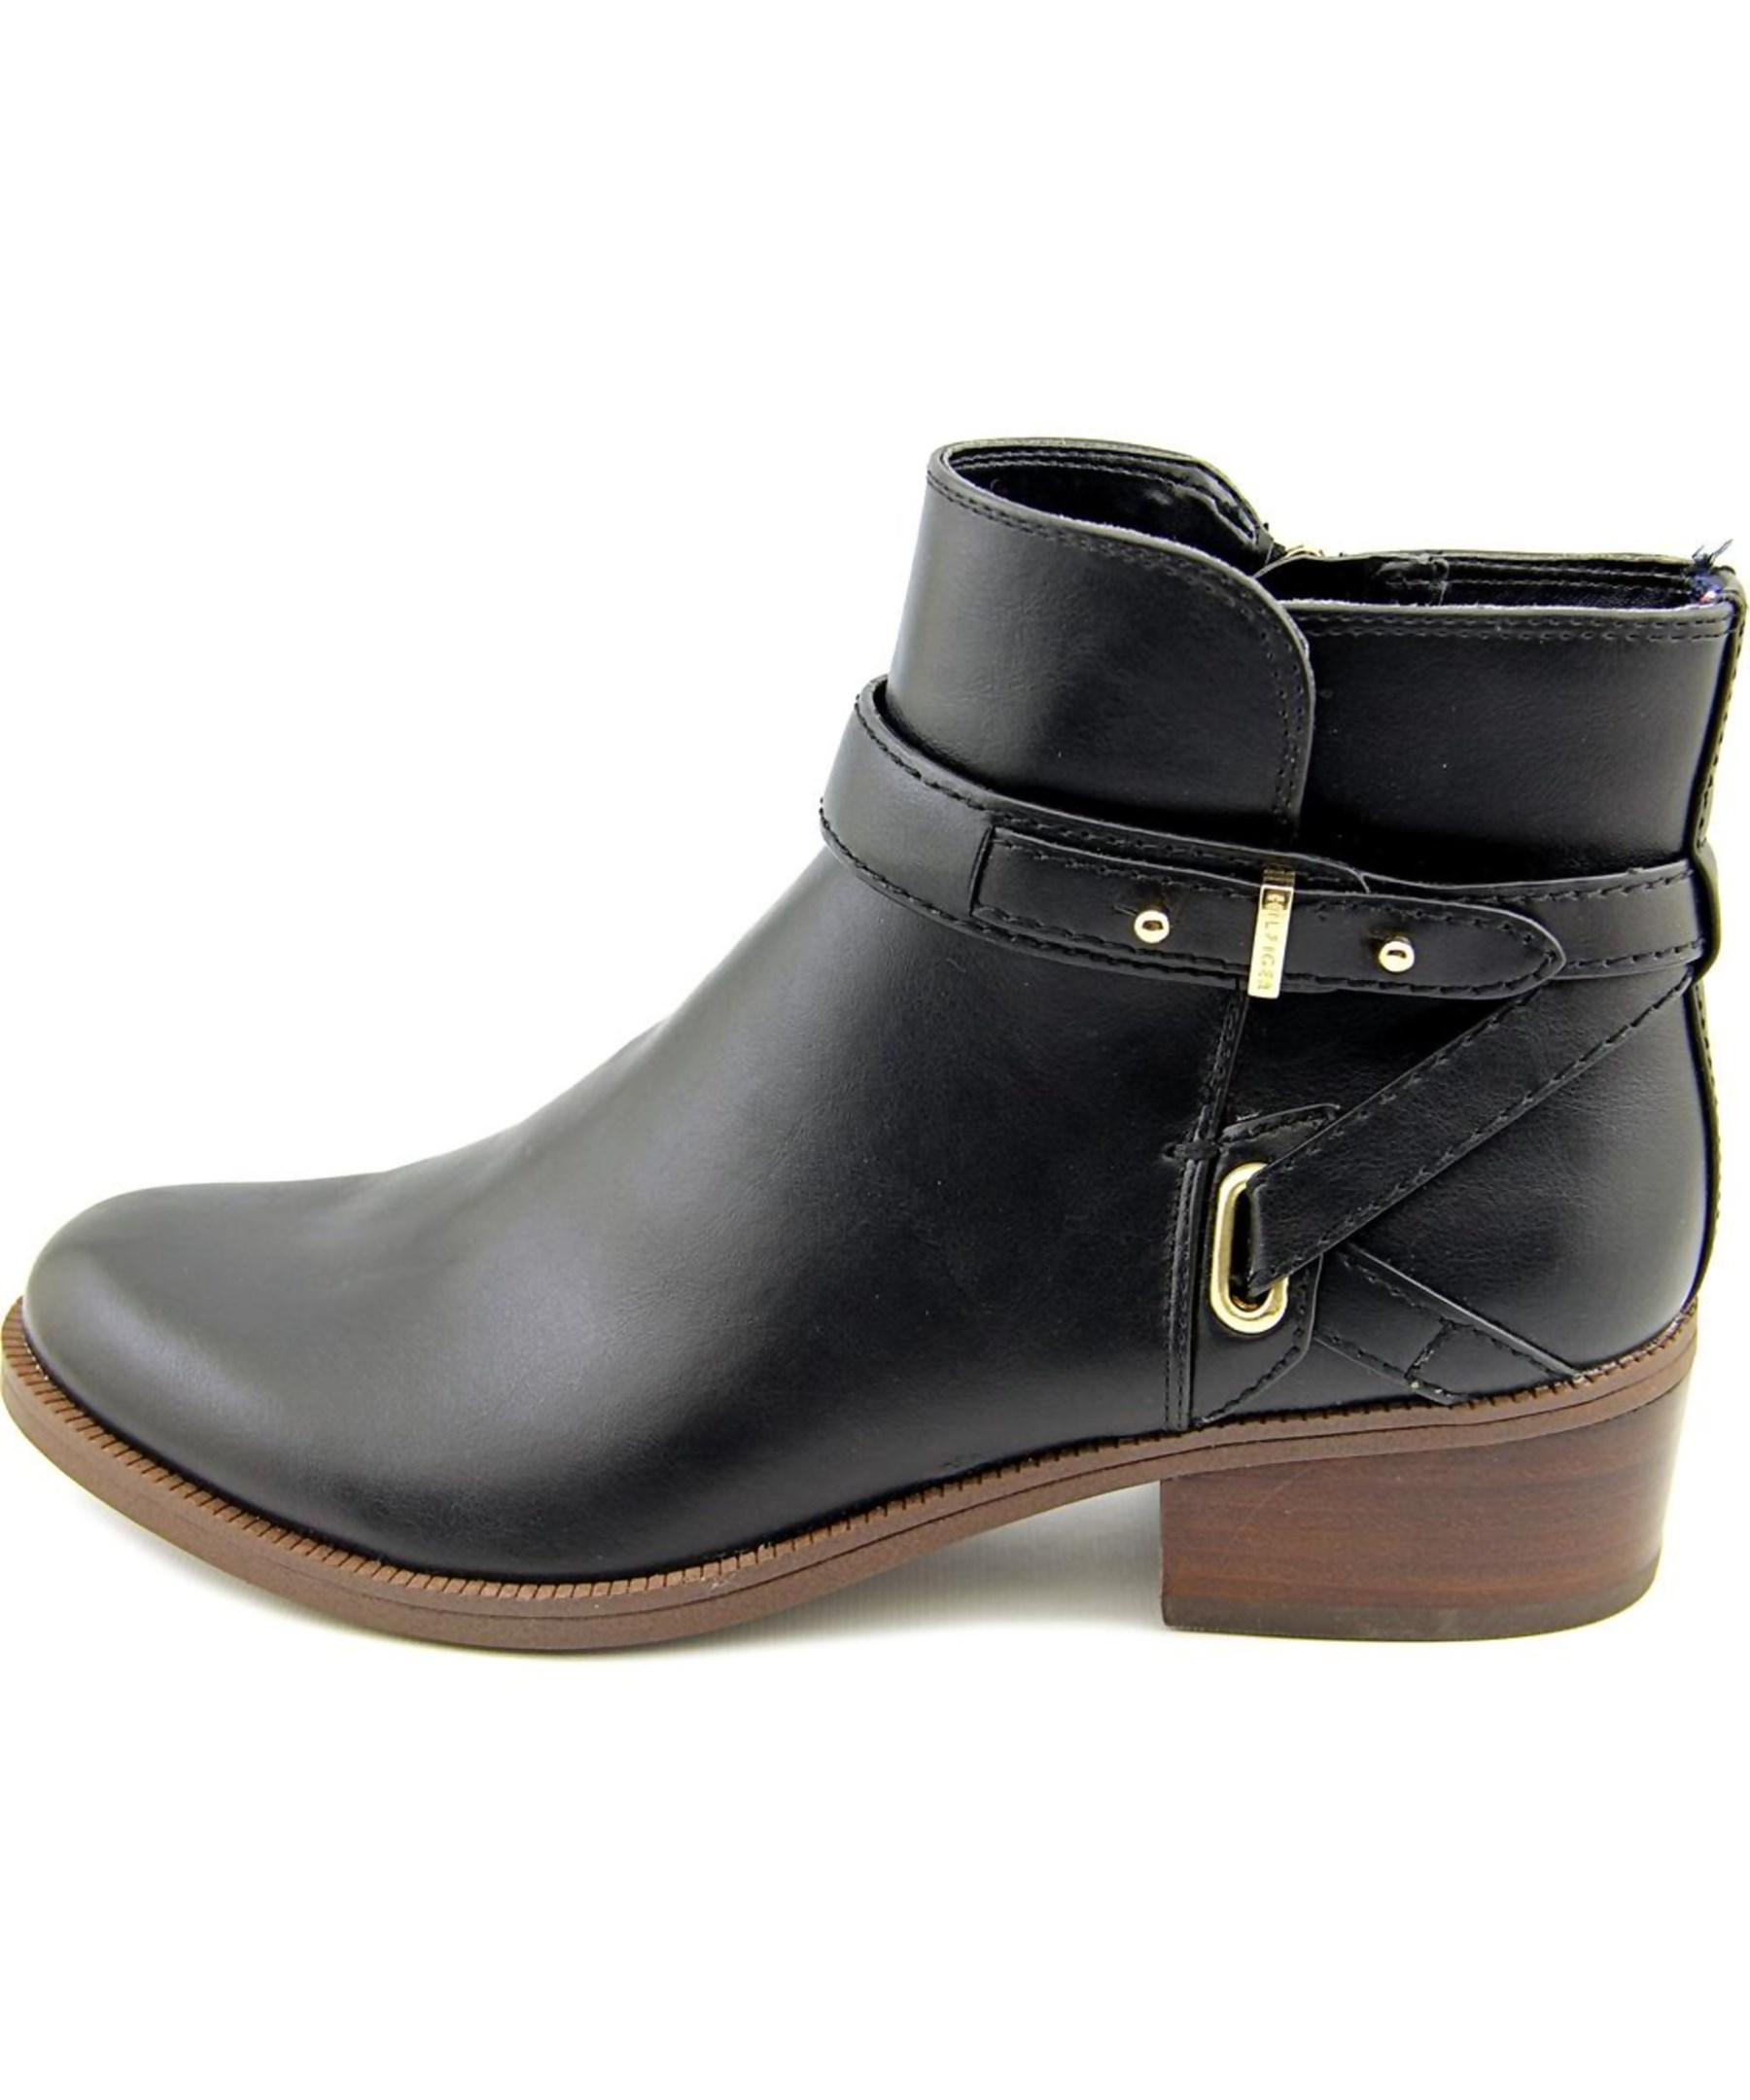 tommy hilfiger gatsbi2 women round toe synthetic black ankle boot in. Black Bedroom Furniture Sets. Home Design Ideas